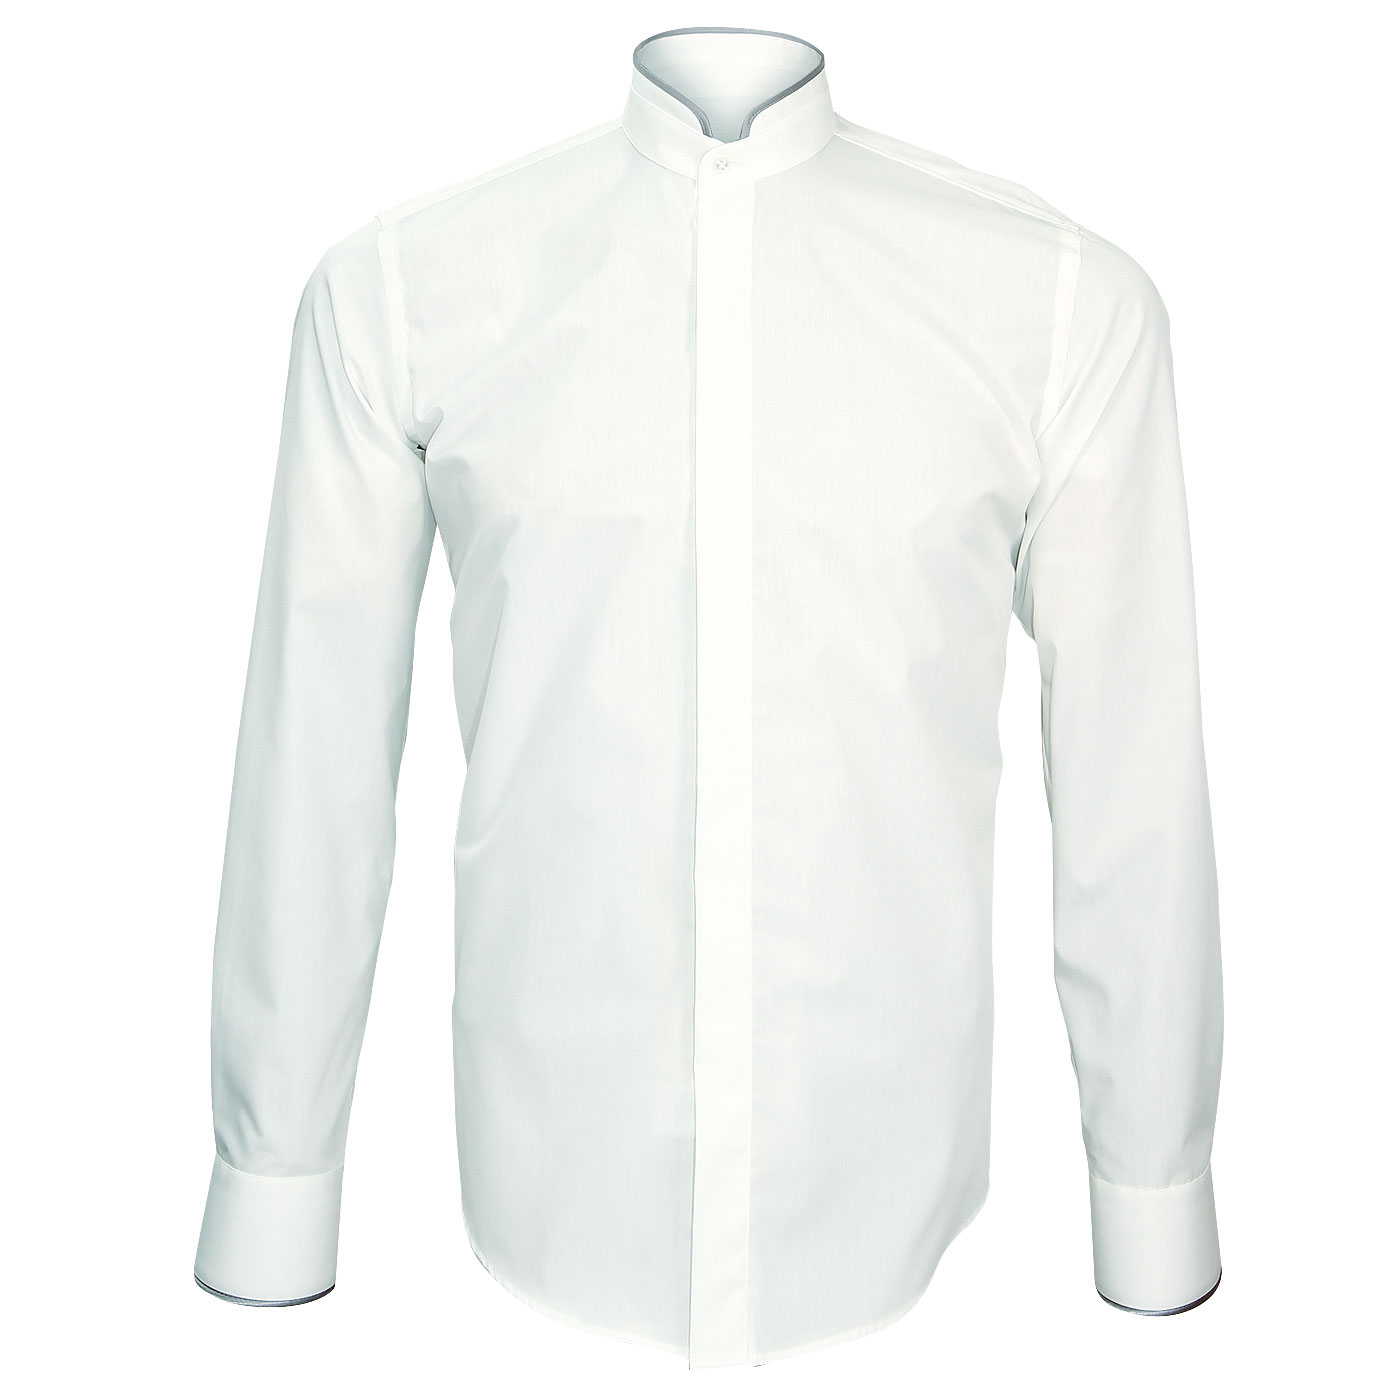 Trendy Dress shirt for events